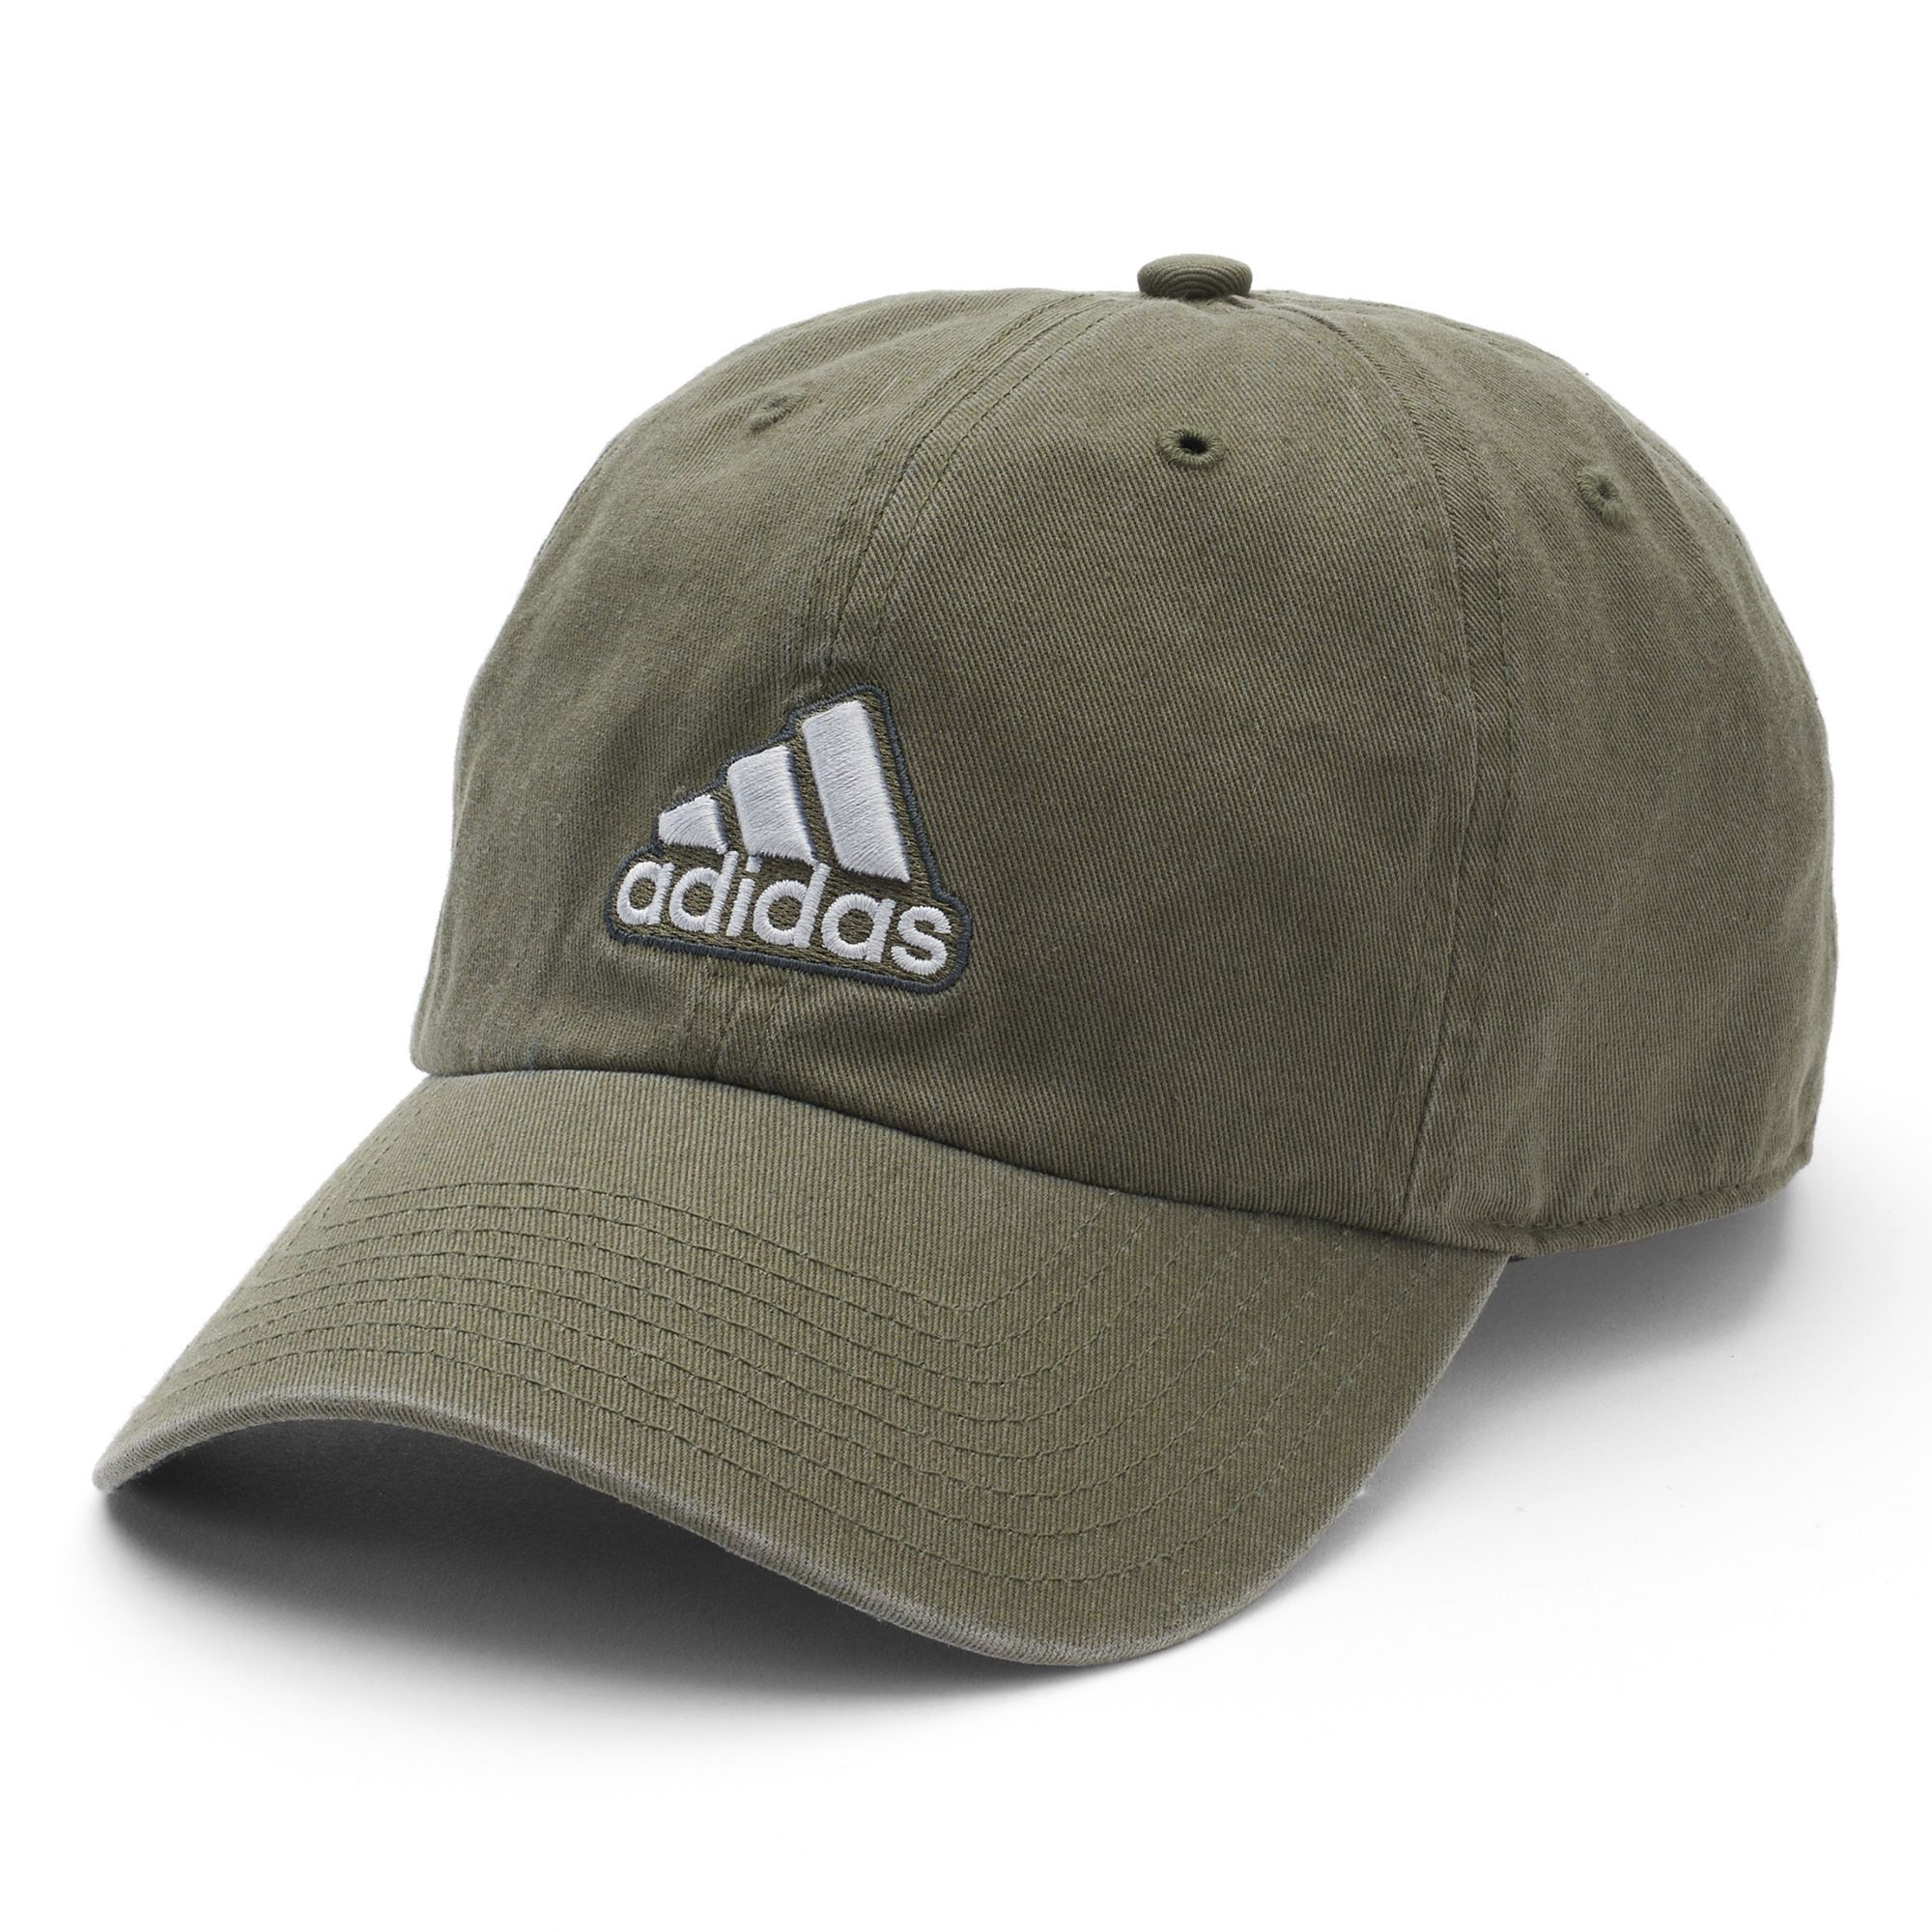 Men's adidas climalite Ultimate Adjustable Cap | Products